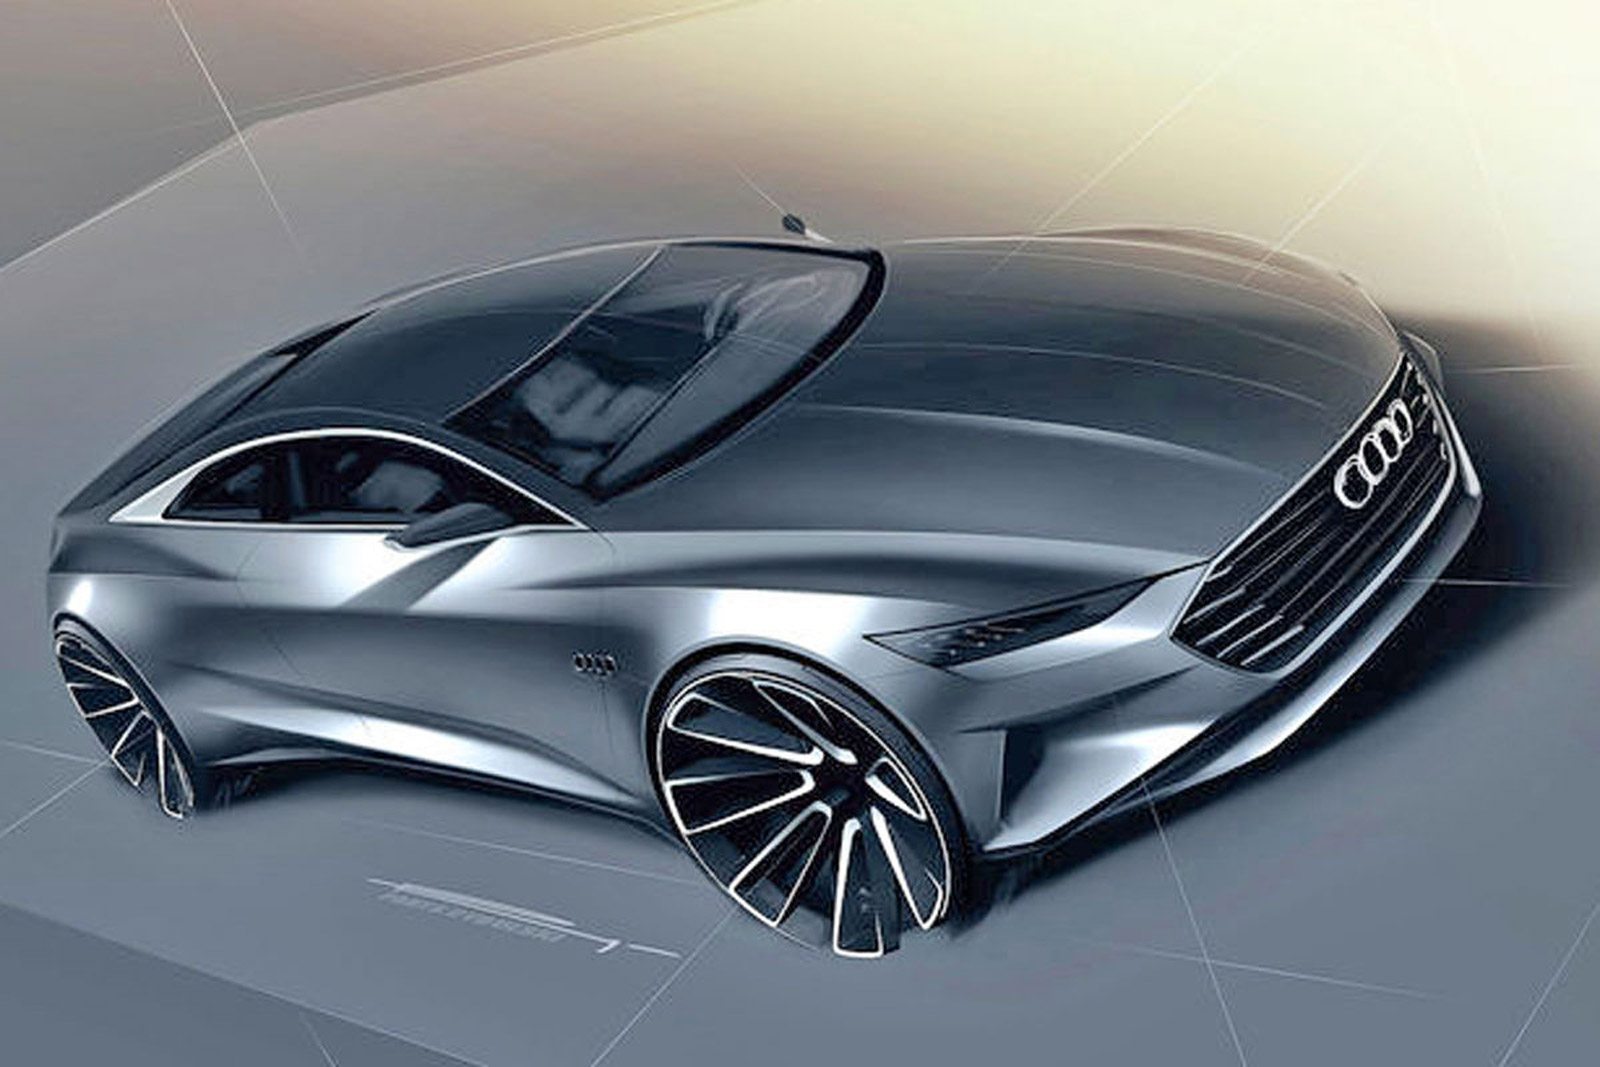 audi prologue concept teased in new sketches could preview flagship a9 coupe. Black Bedroom Furniture Sets. Home Design Ideas